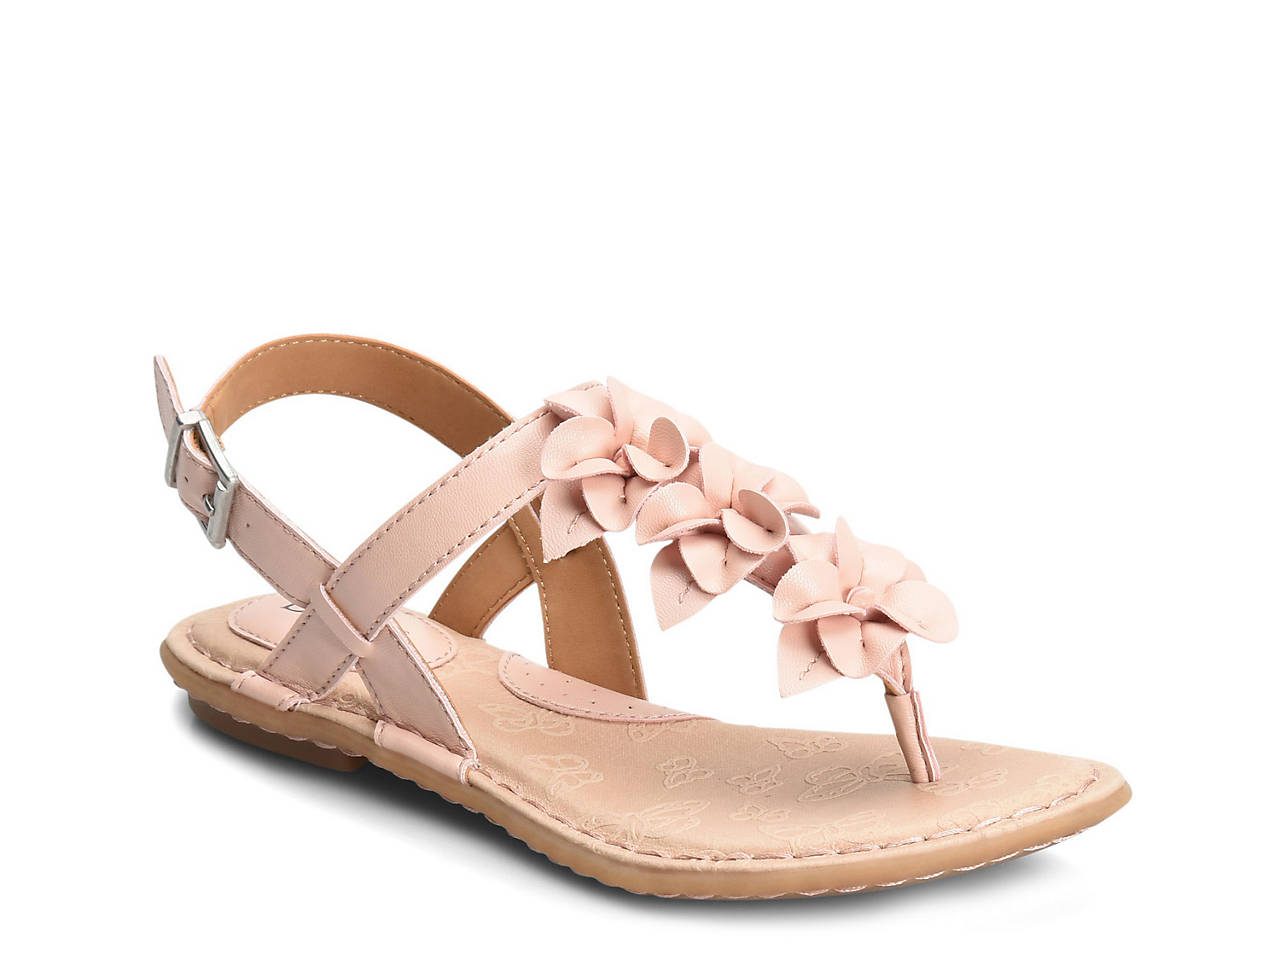 5a430a0766bdb b.o.c Showers Sandal Women s Shoes